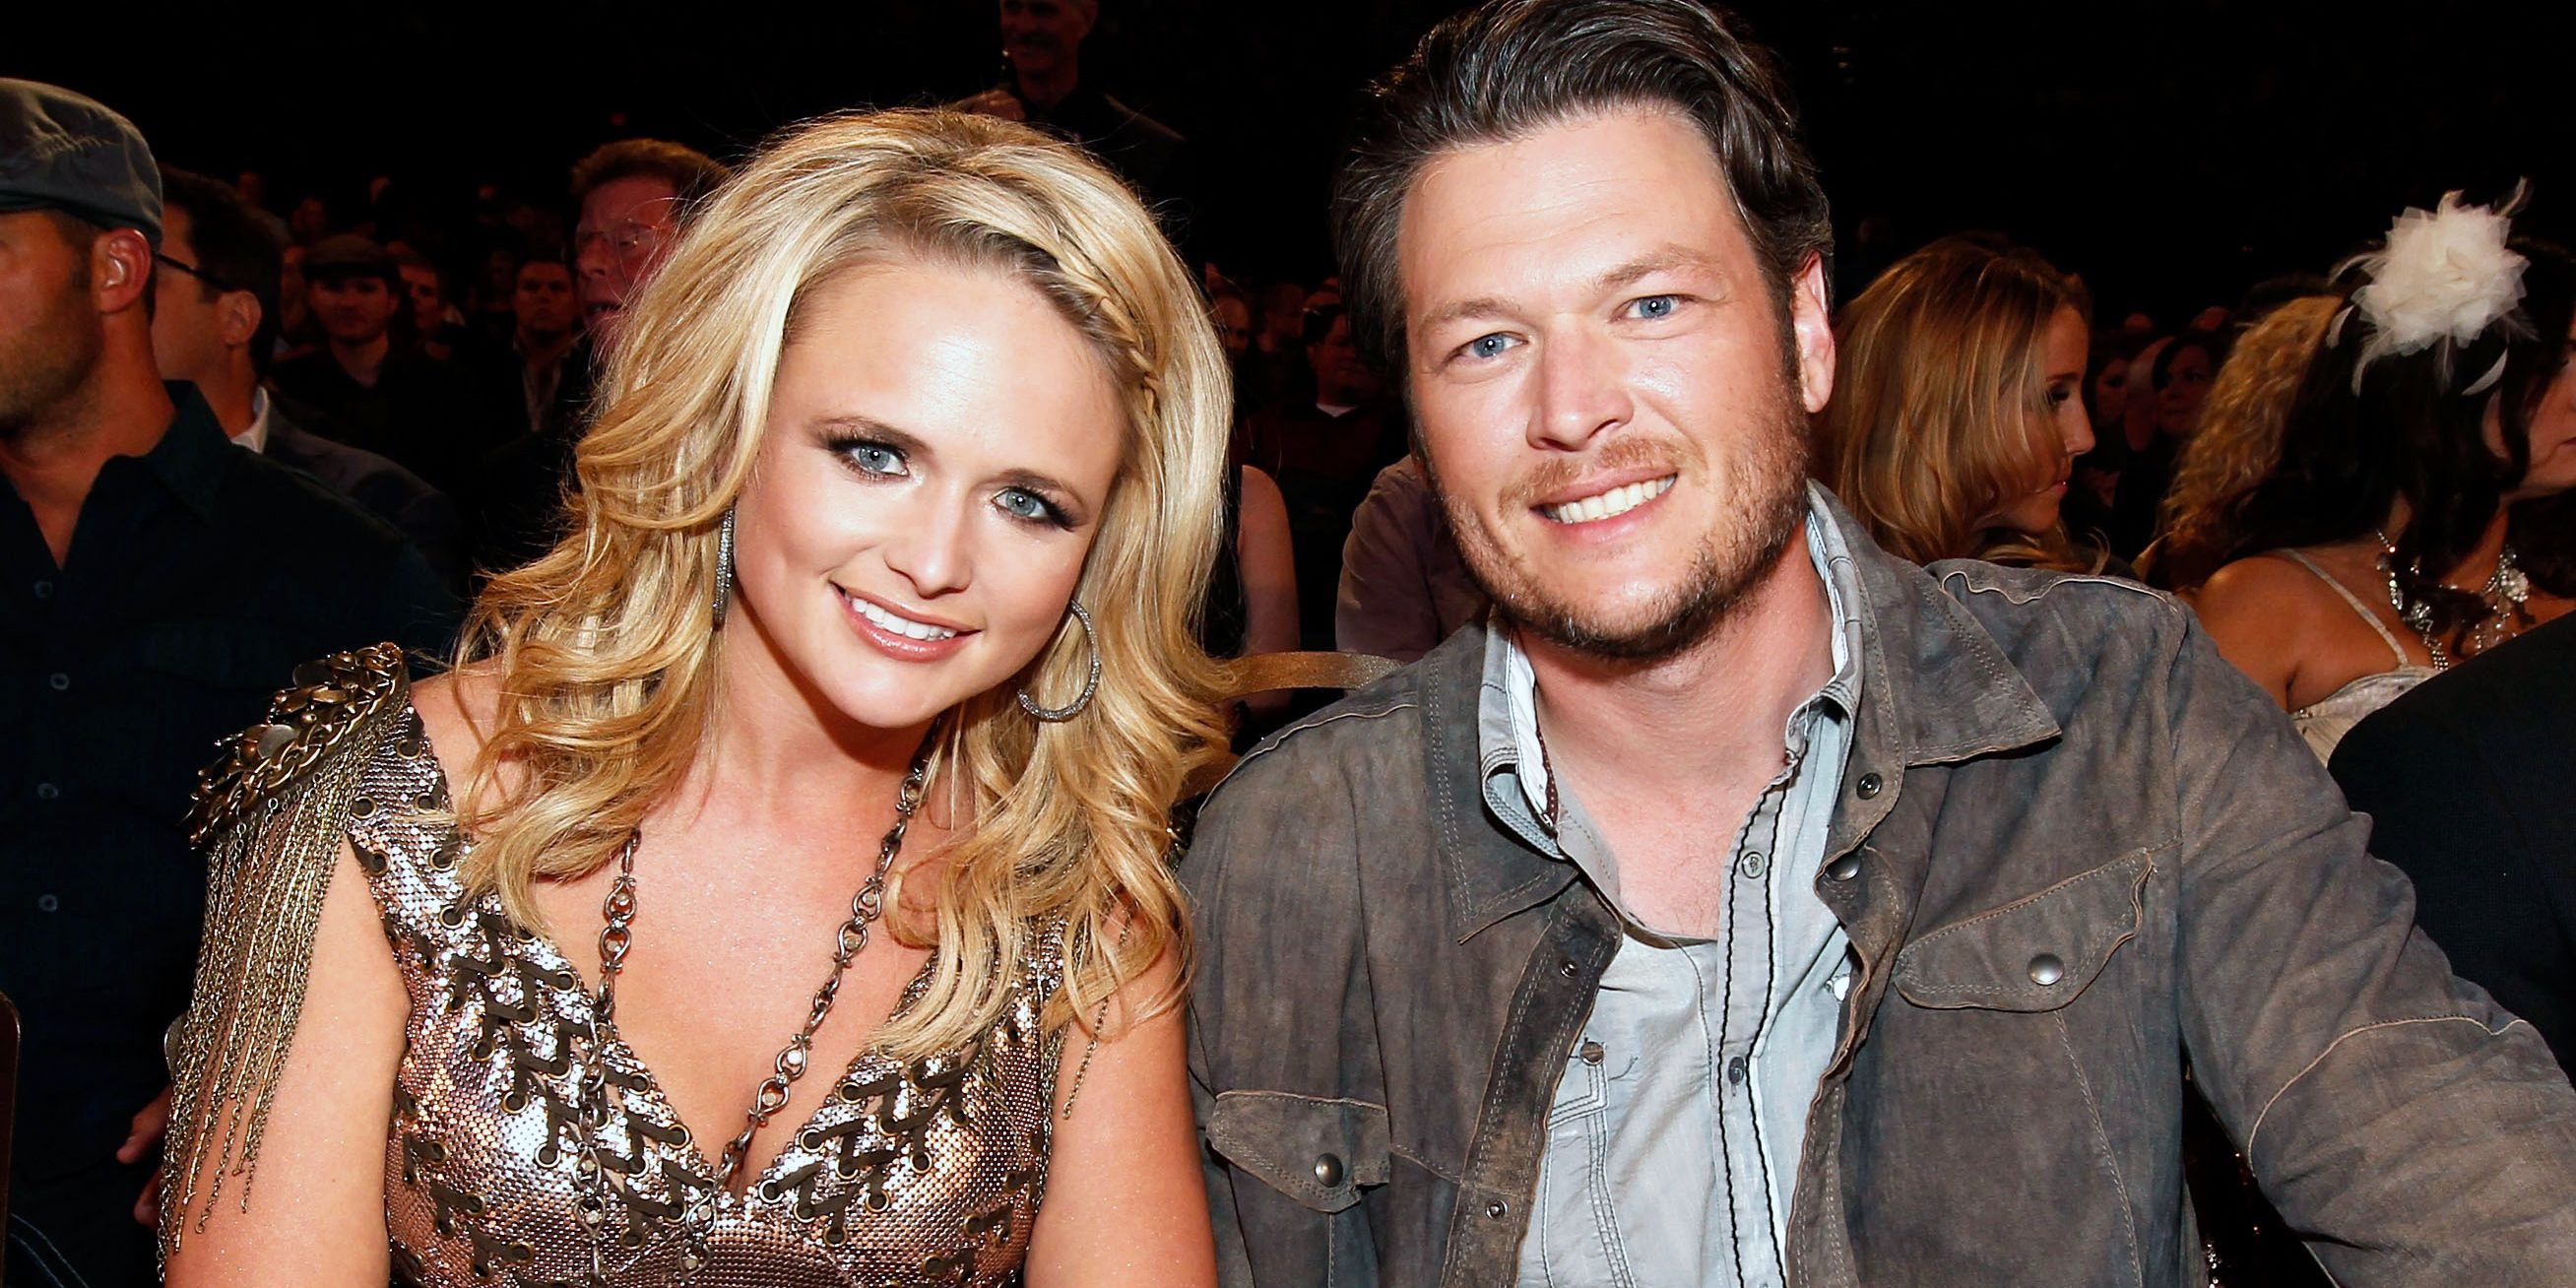 Who is blake shelton dating now